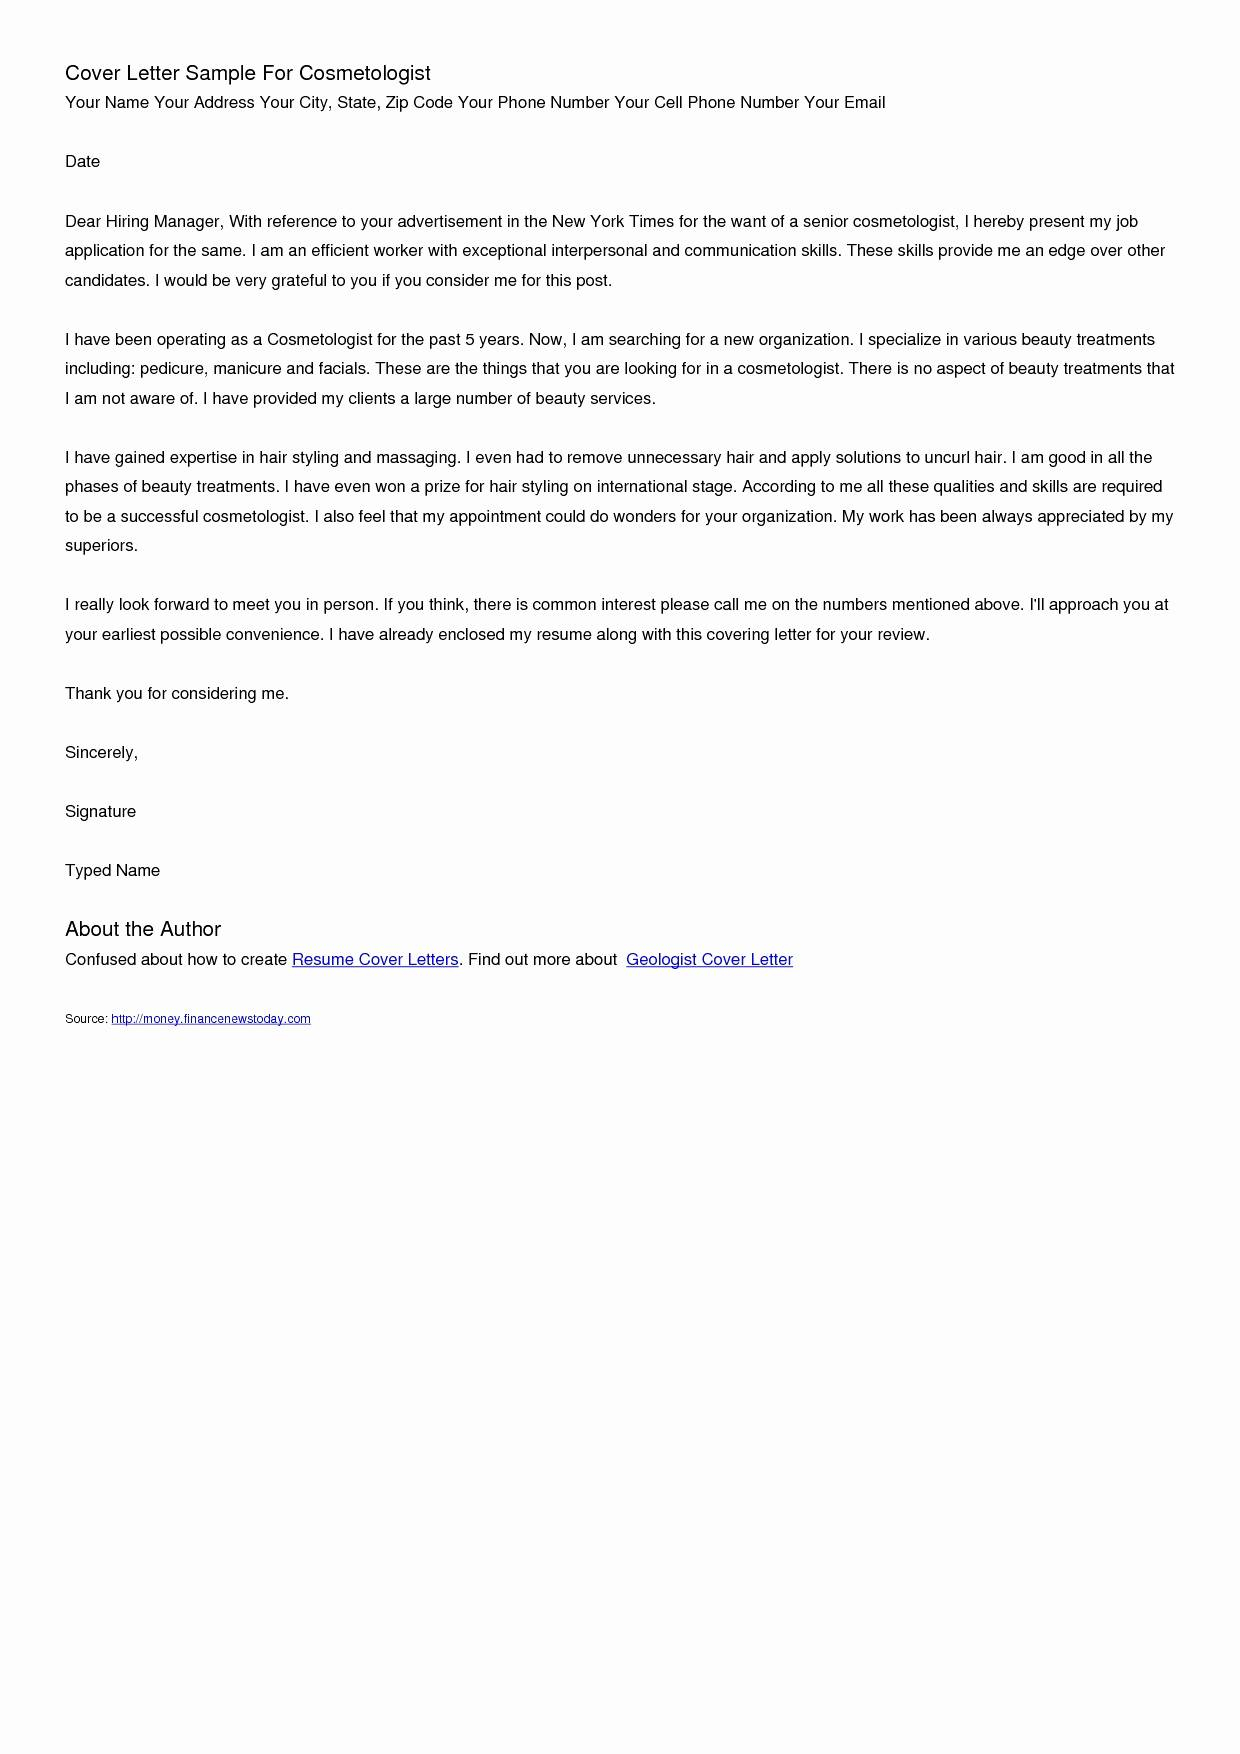 cosmetologist cover letter template Collection-Cosmetology Cover Letter Samples Awesome Resume Templates 10-f